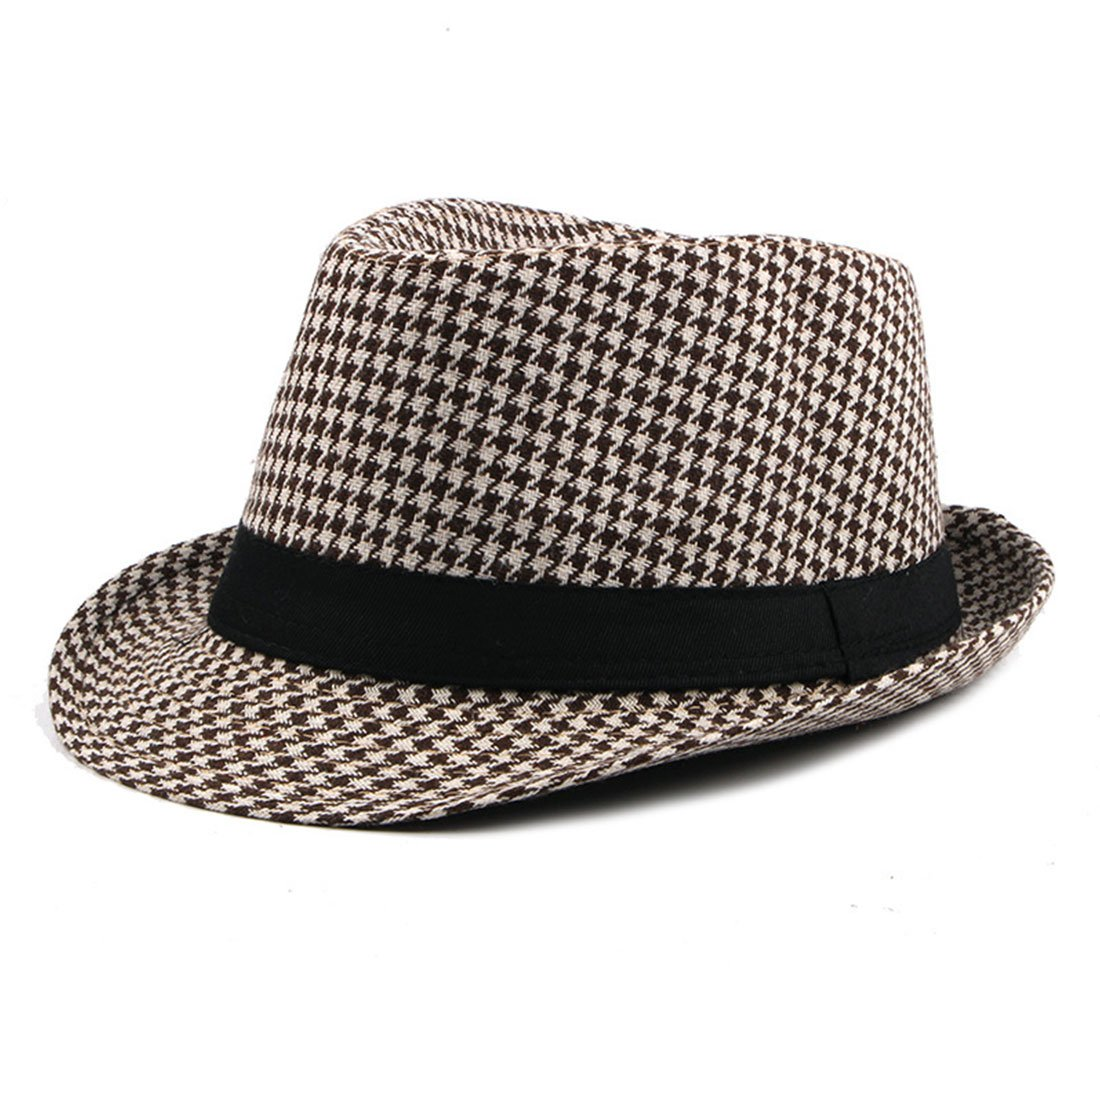 8d7a65c1771 Classic Houndstooth Black Band Wool Trilby Cap Soft Wool Blend Hat Winter -  Beige + Khaki at Amazon Men s Clothing store